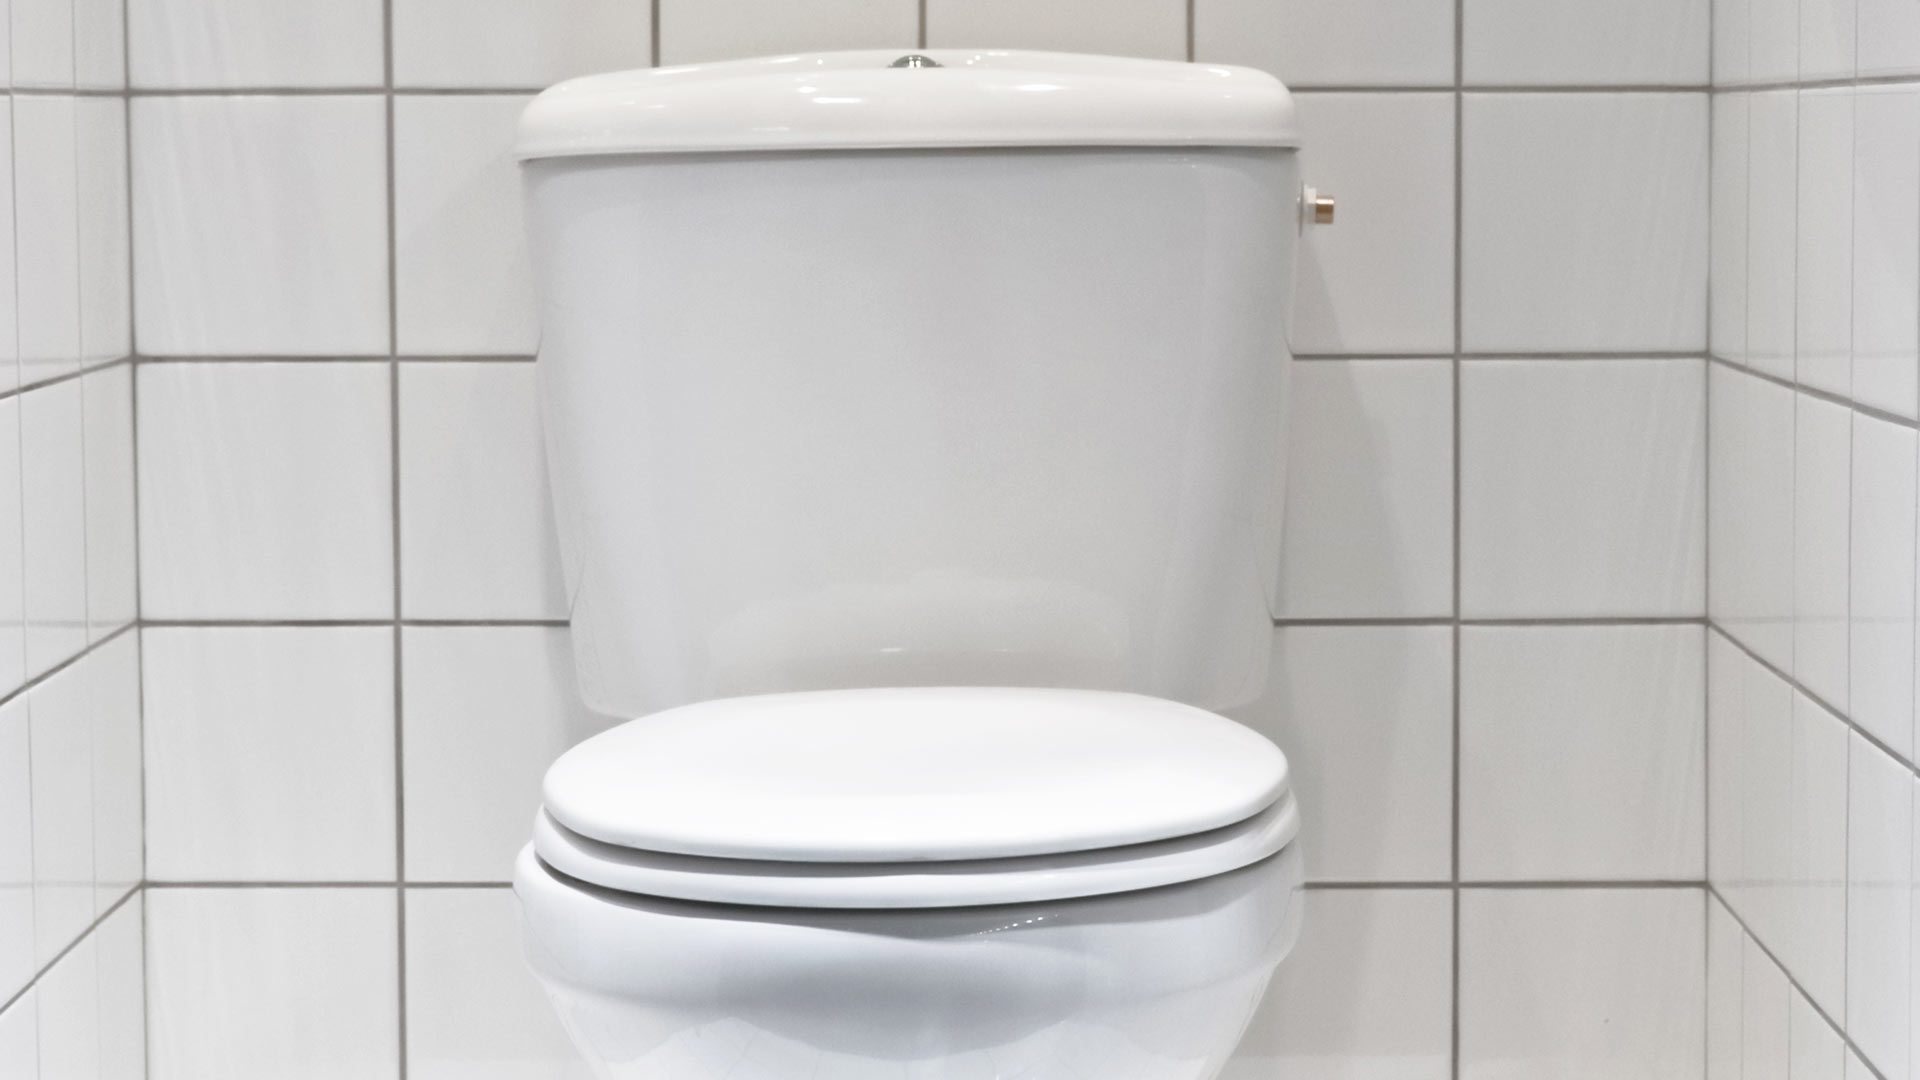 High-Efficiency Toilets vs. Regular Toilets